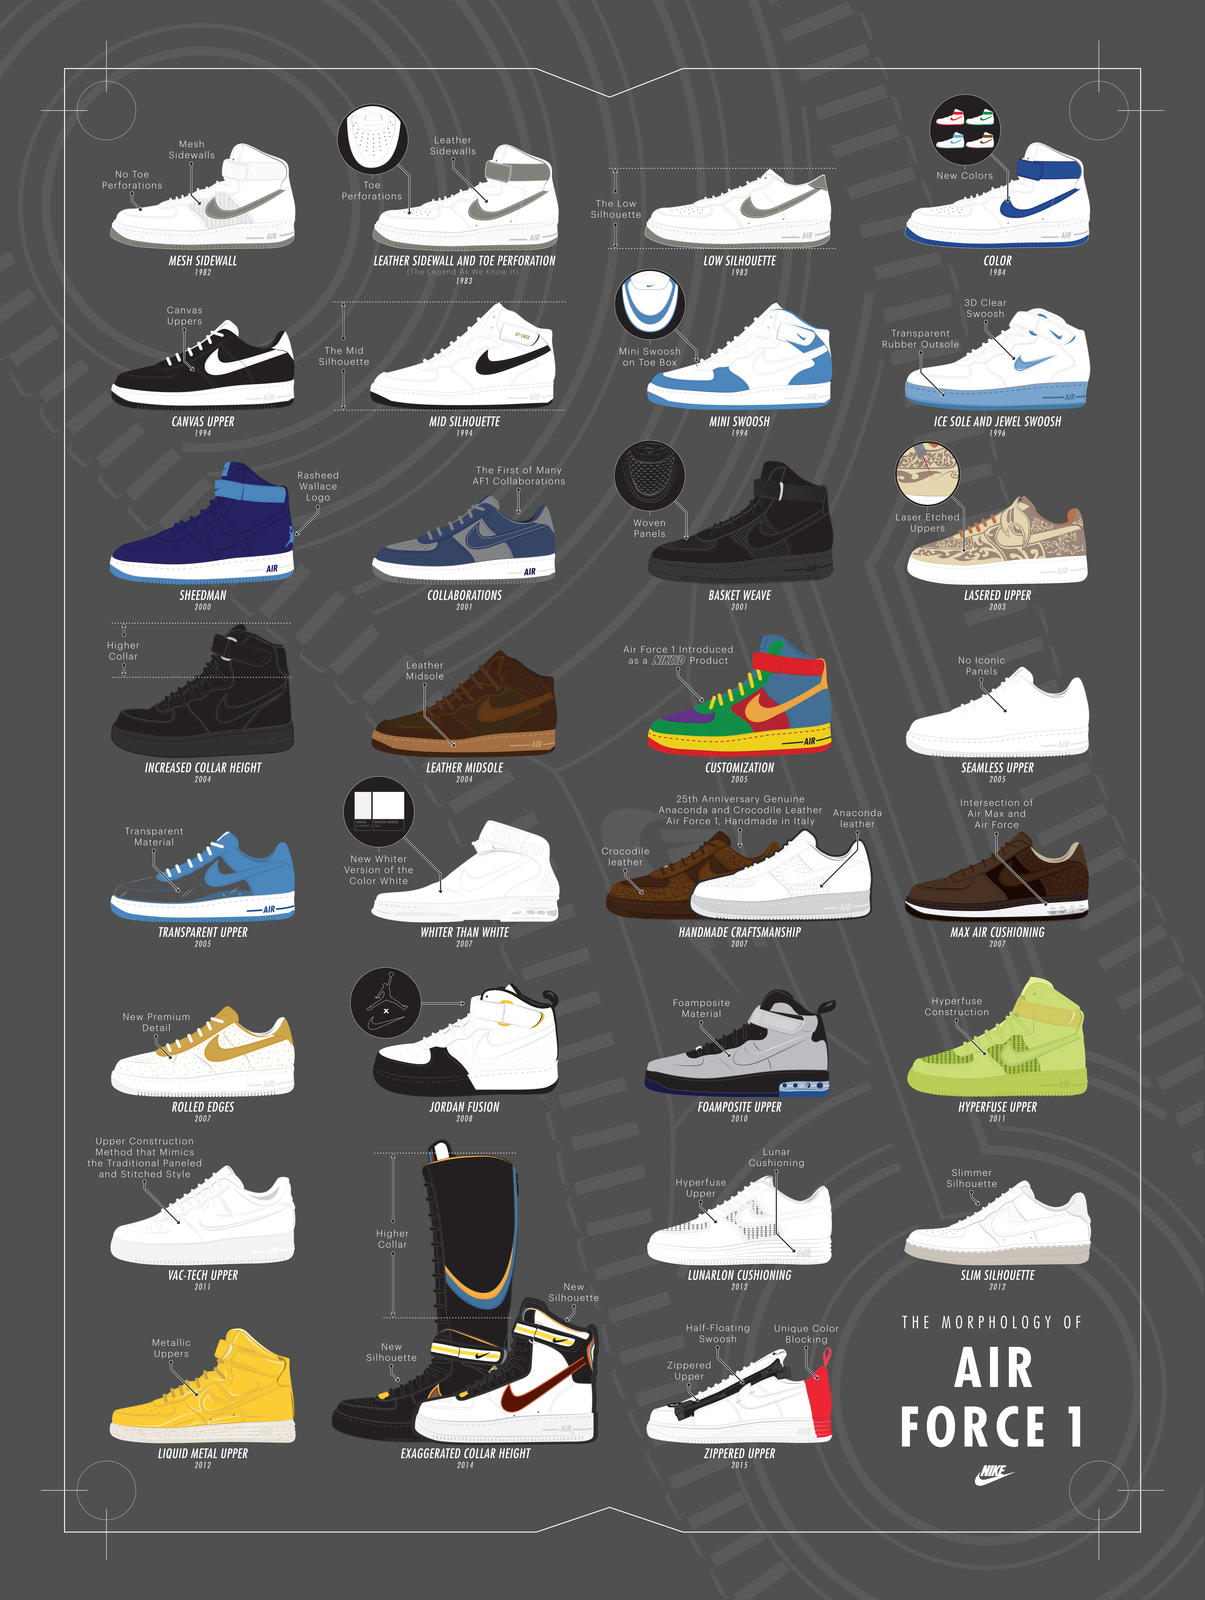 Time Brings Change: The Morphology of Air Force 1 Nike News